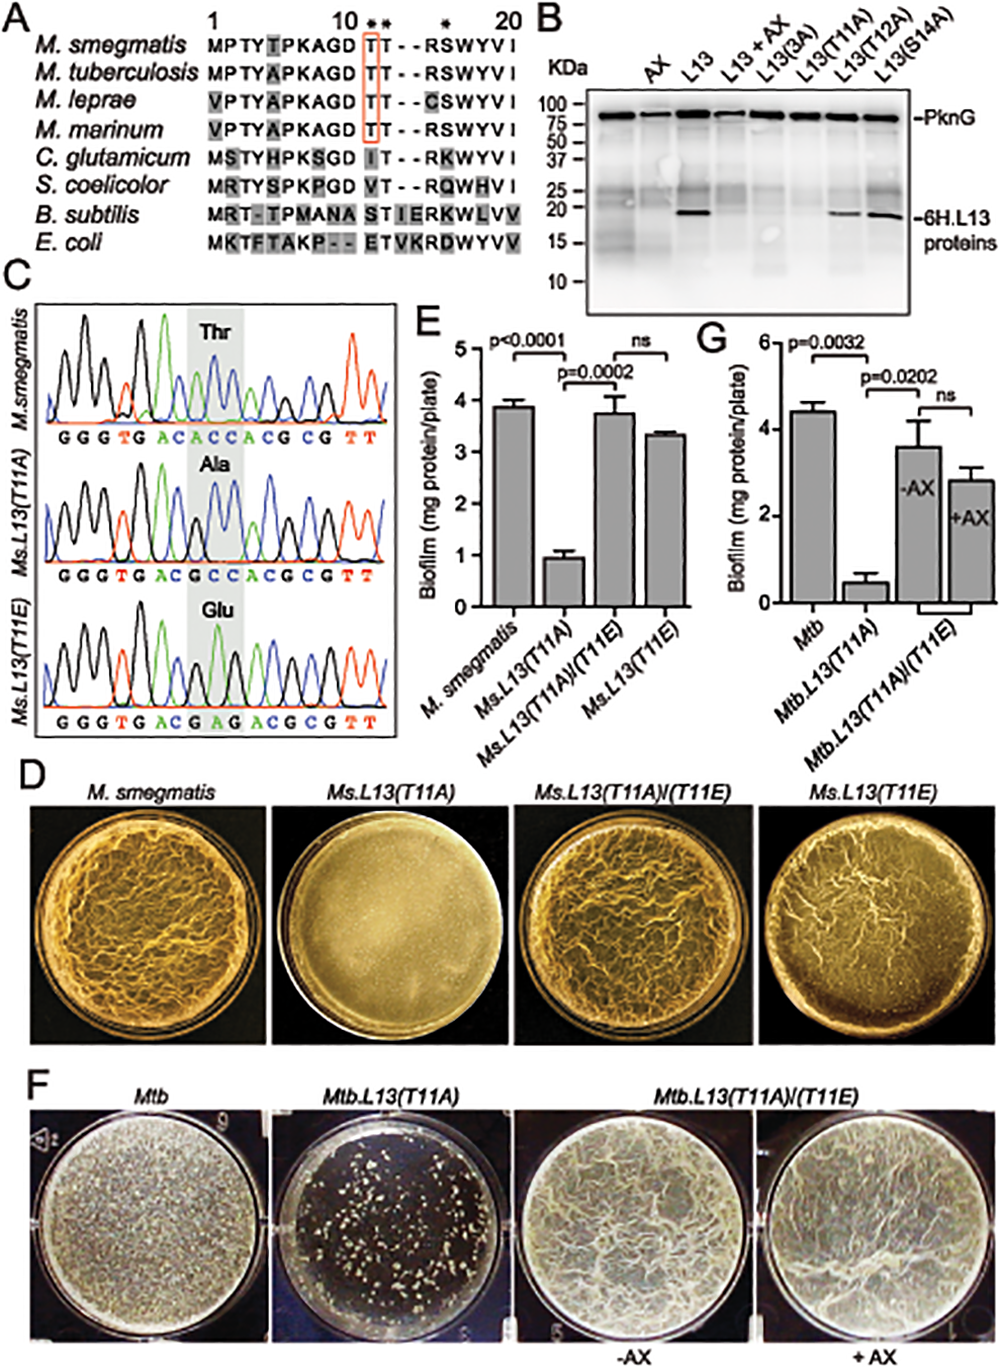 PknG-catalyzed phosphorylation of L13 at a mycobacterial specific site, T11, is required for mycobacterial biofilm growth.